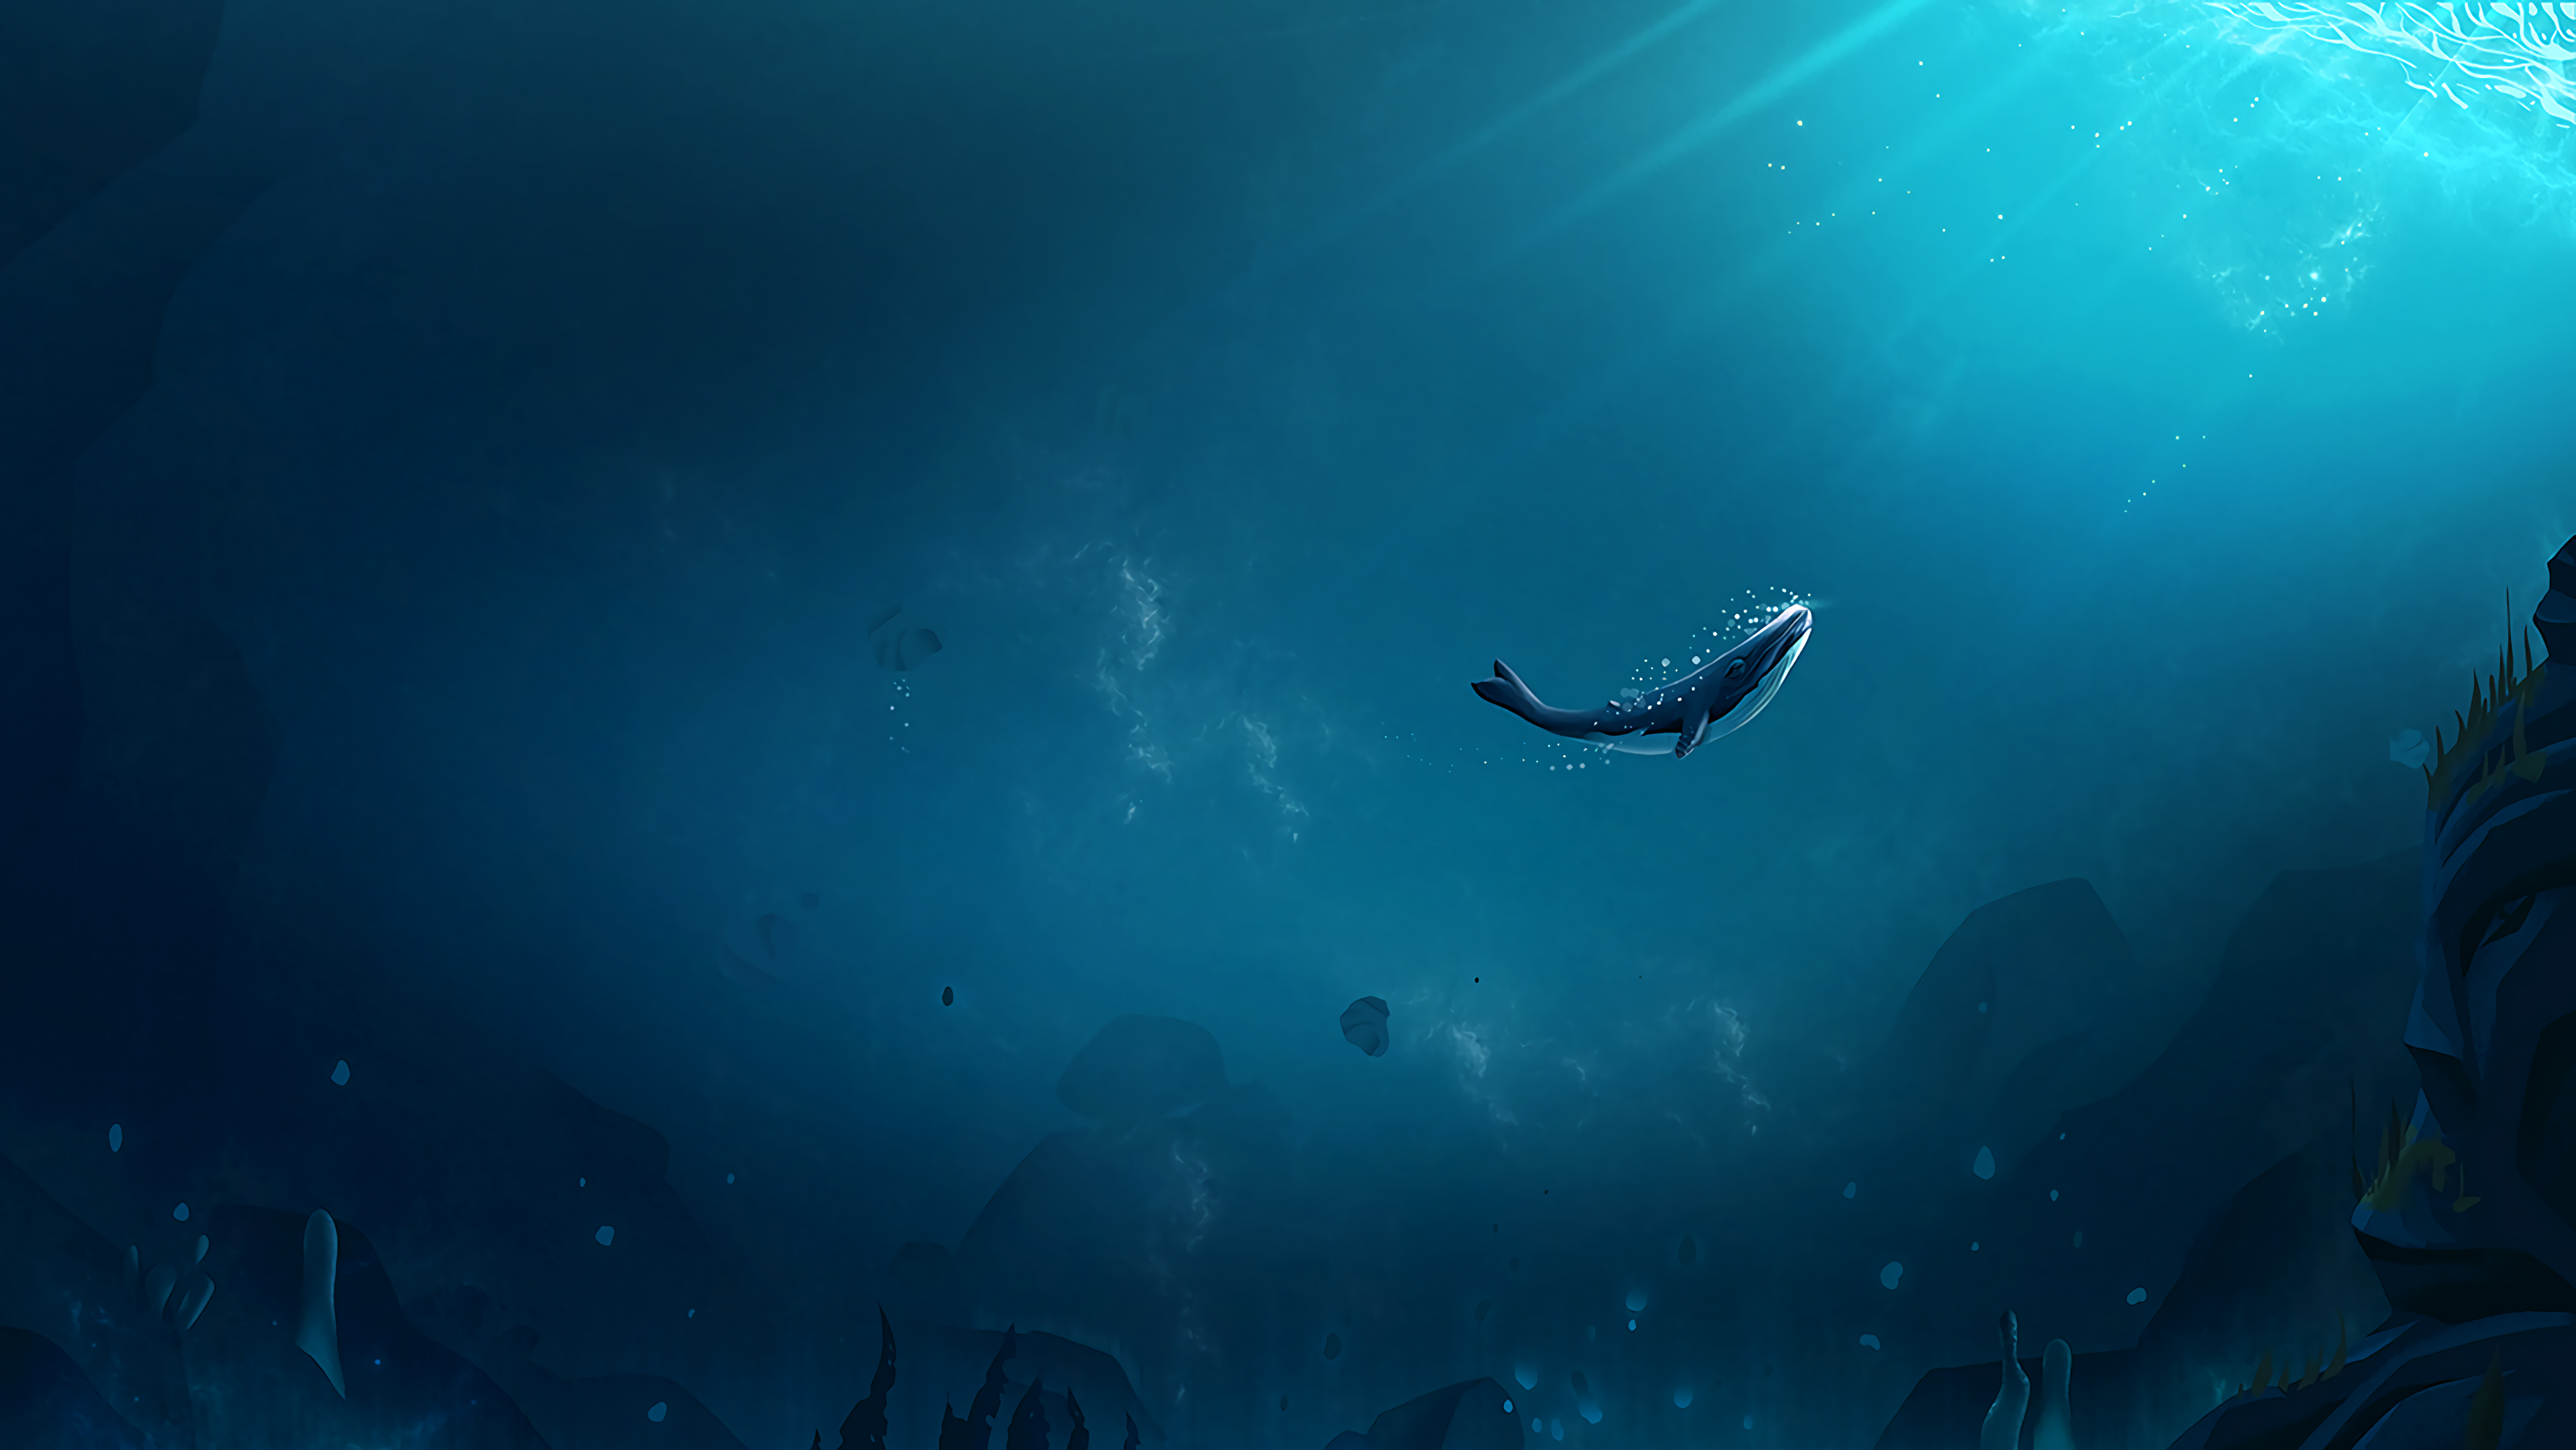 Lonely Whale Hd Artist 4k Wallpapers Images Backgrounds